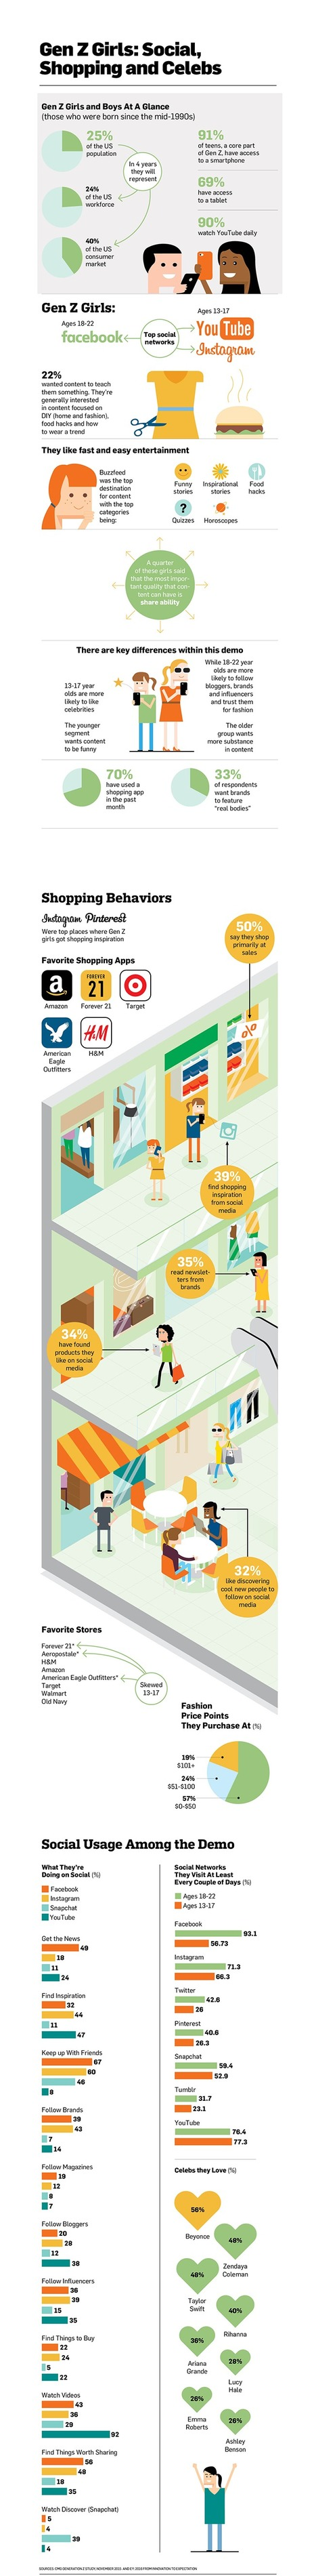 Infographic: Here's How Gen Z Girls Prefer to Shop and Socialize Online | Portugueses Curious | Scoop.it